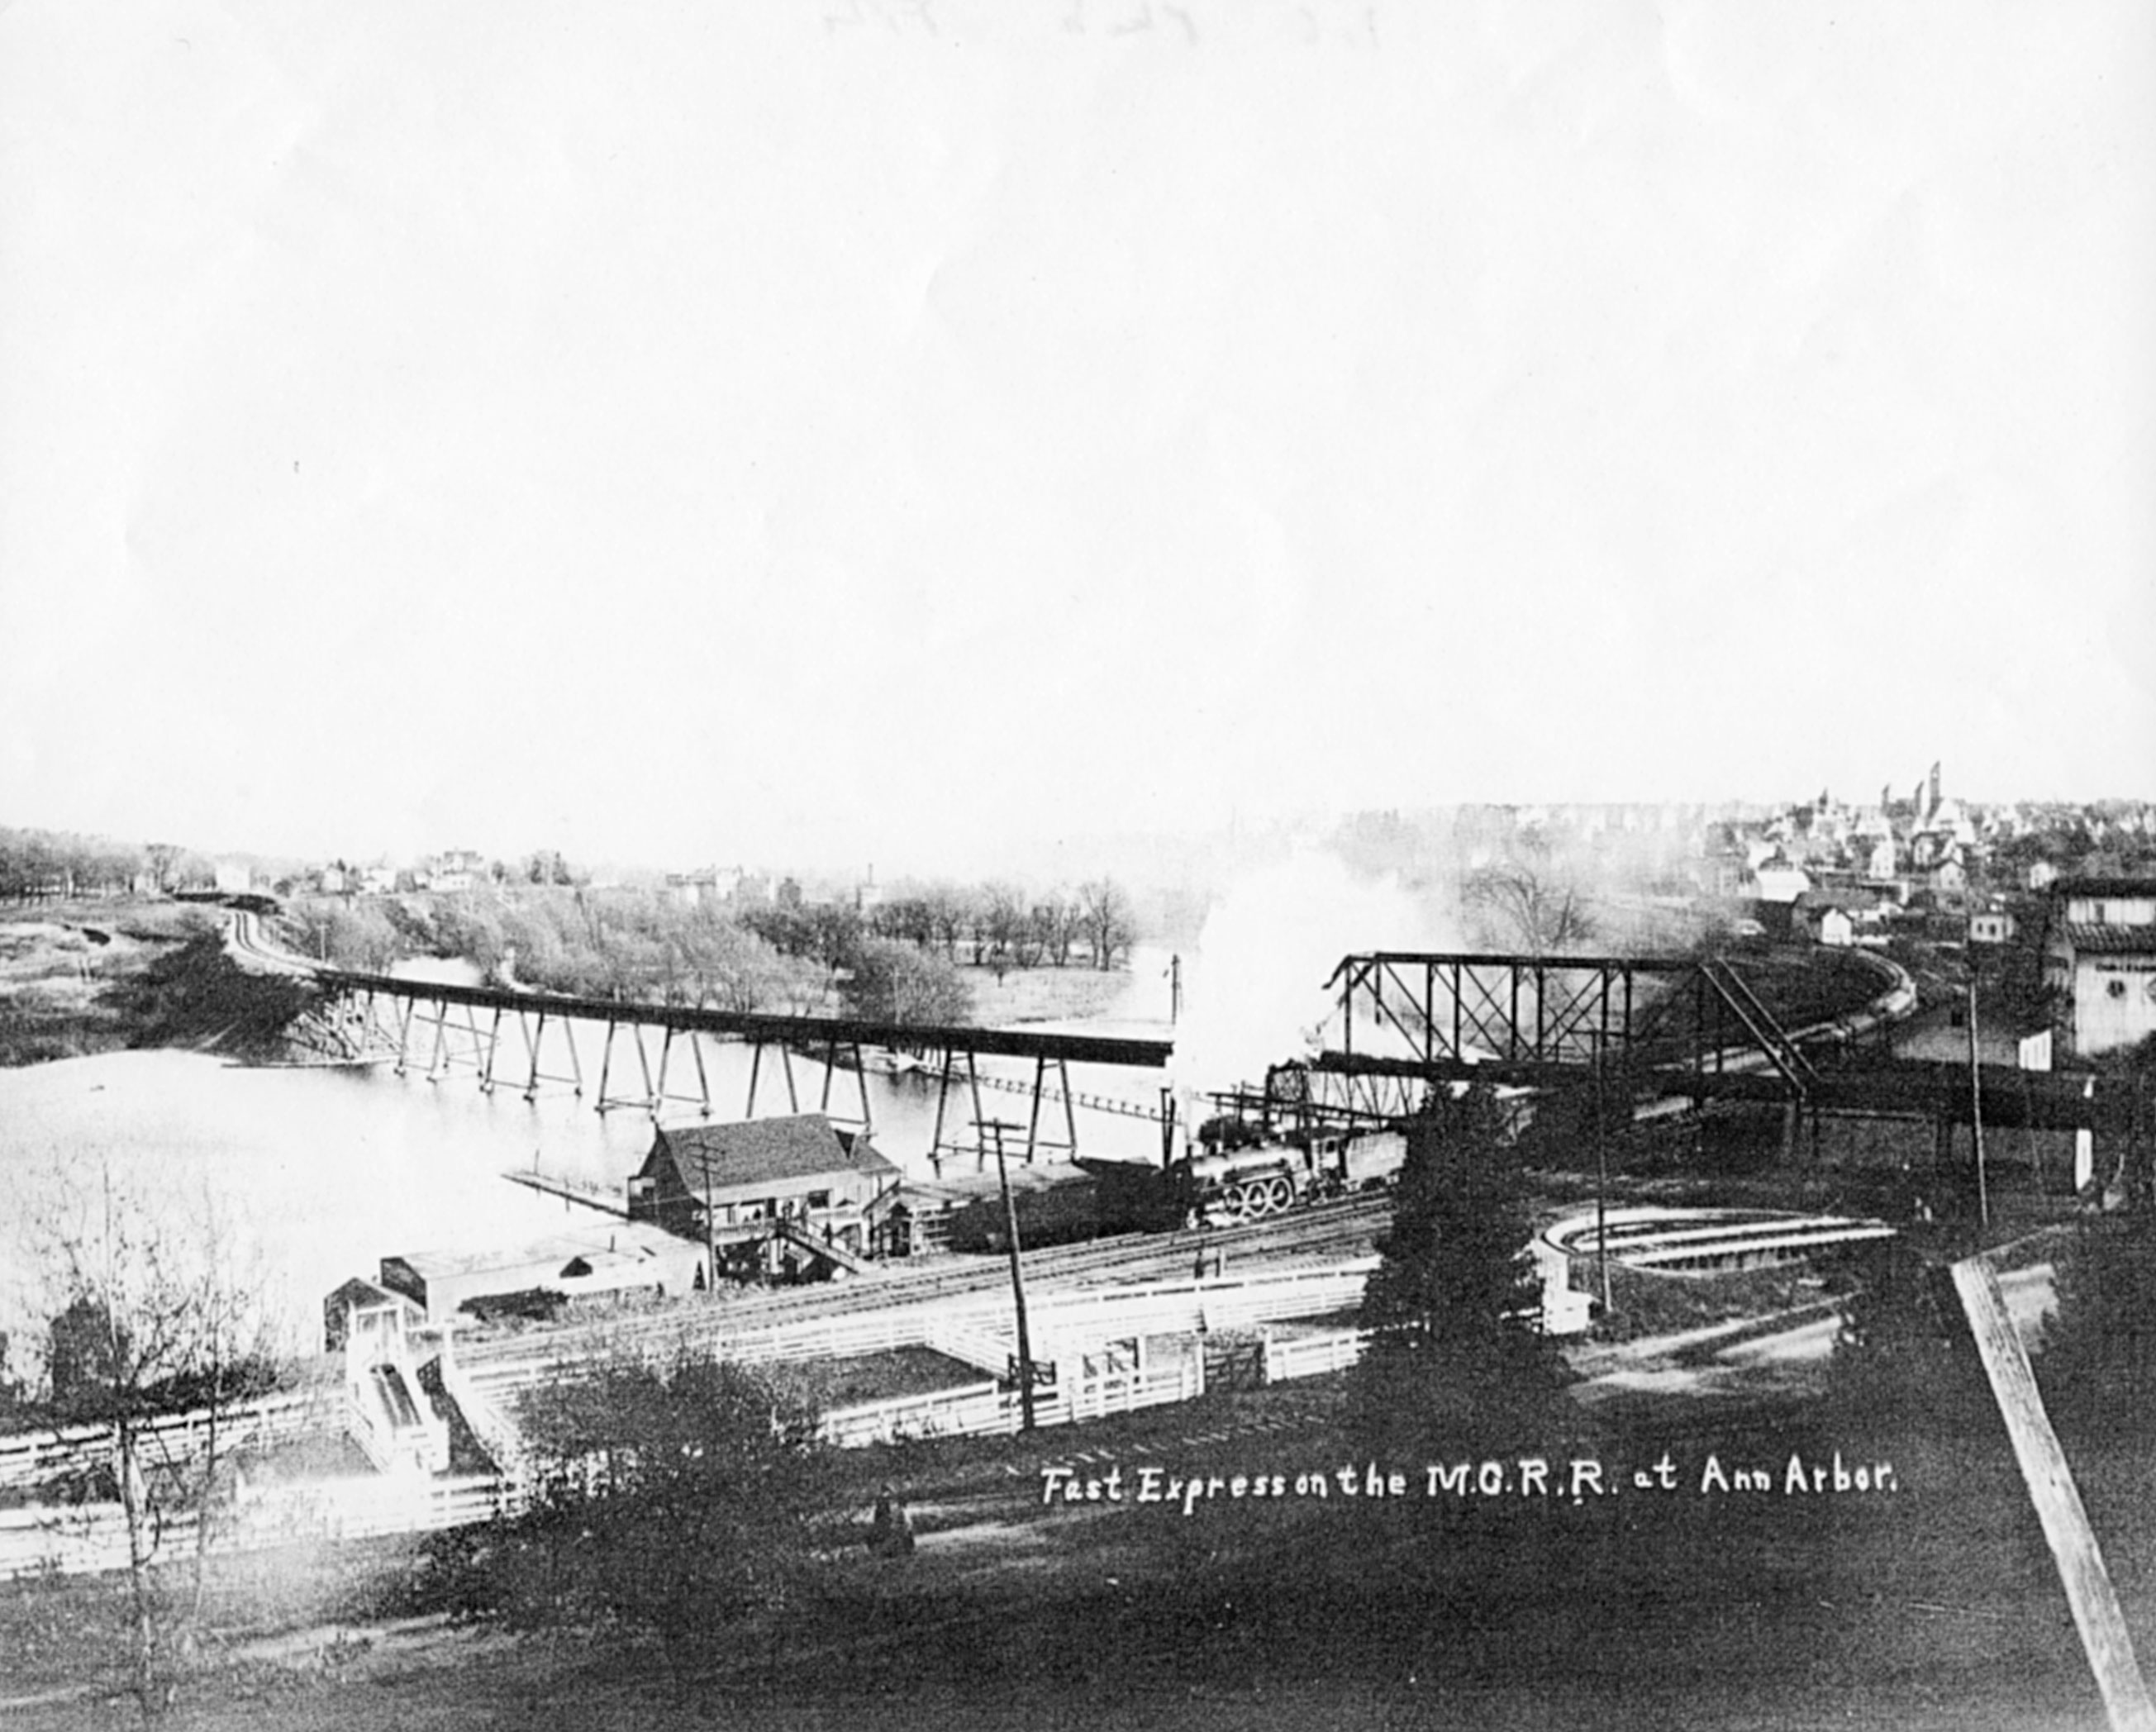 metal trestle, 1894 image